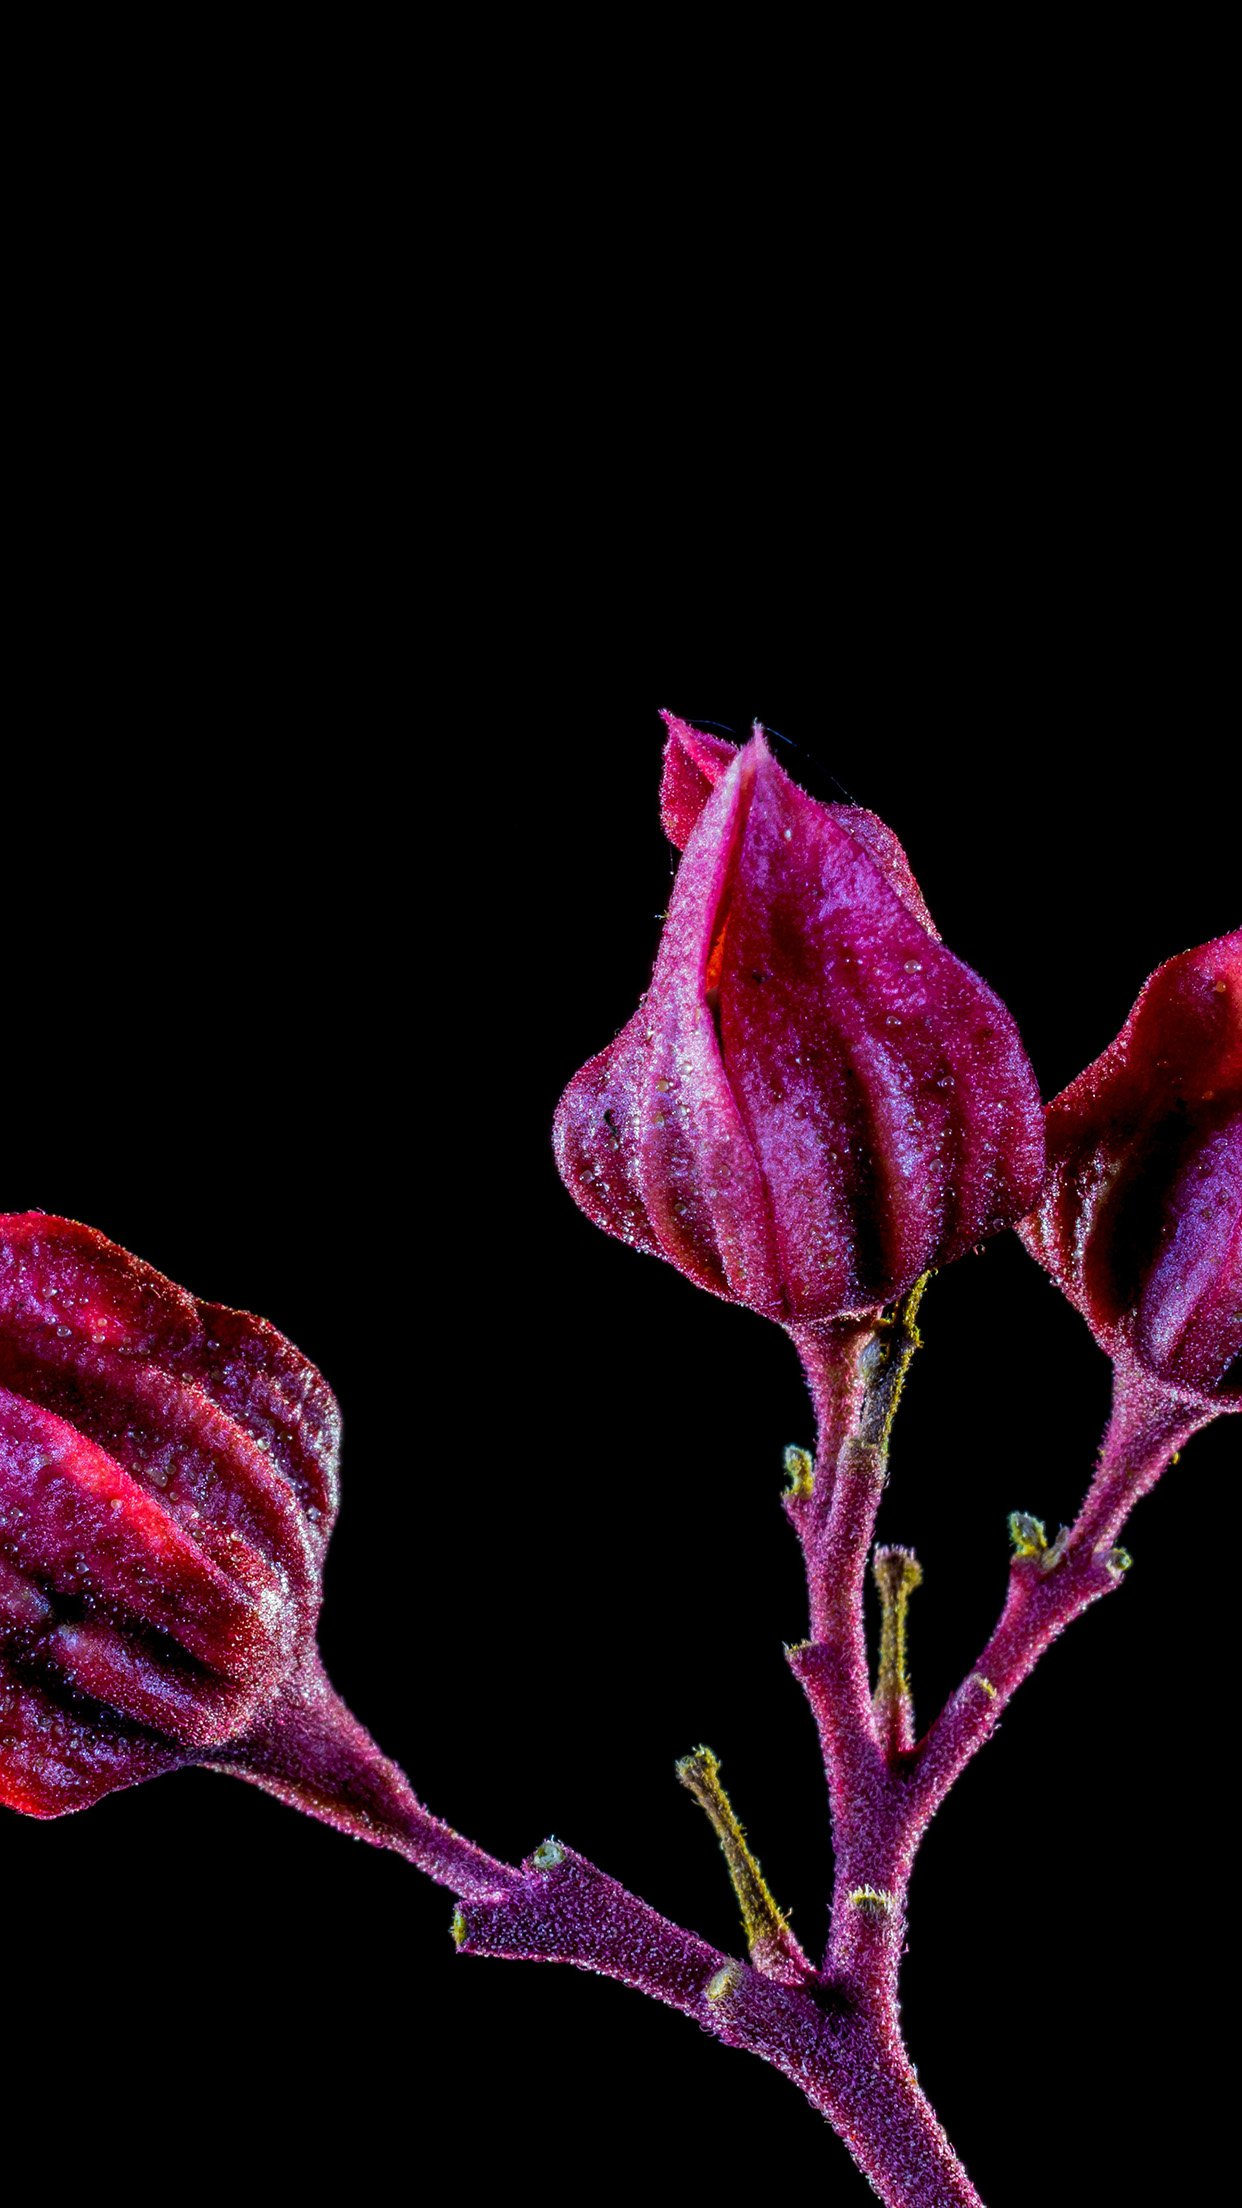 Flower Red Dark Art Nature Android wallpaper